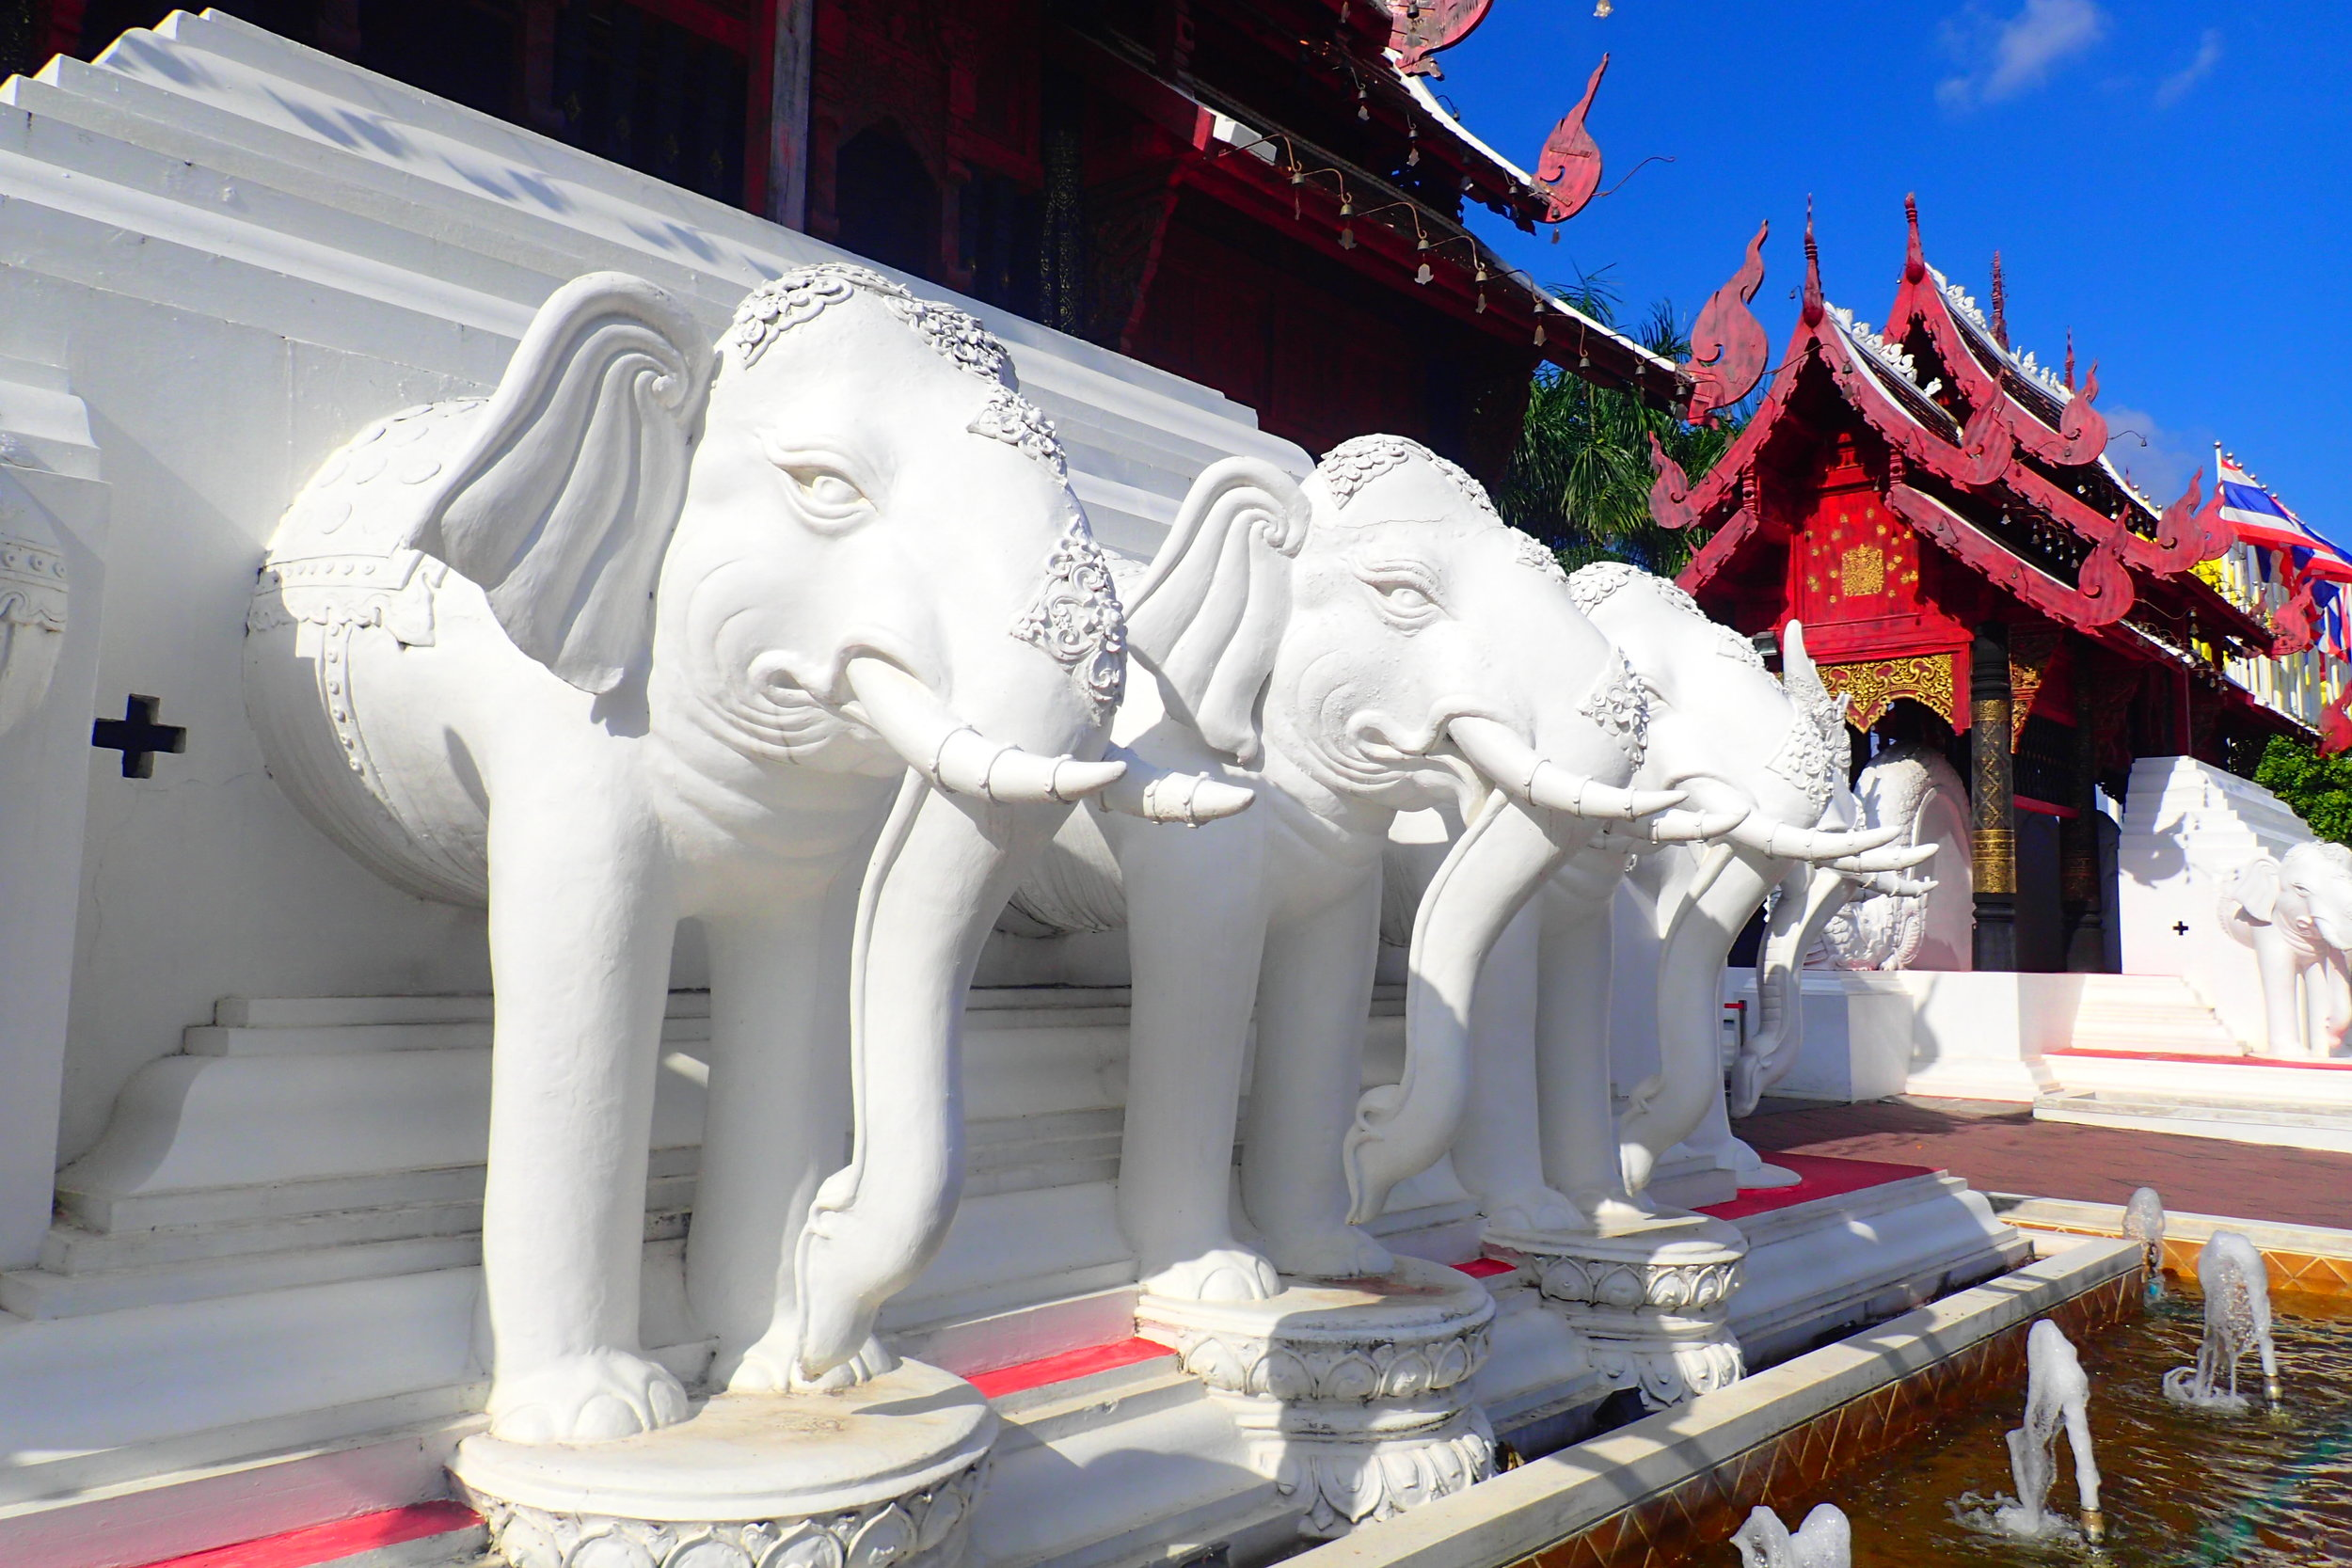 Elephants are a symbol in Thai cultural, held in high esteem despite their mistreatment for tourism purposes